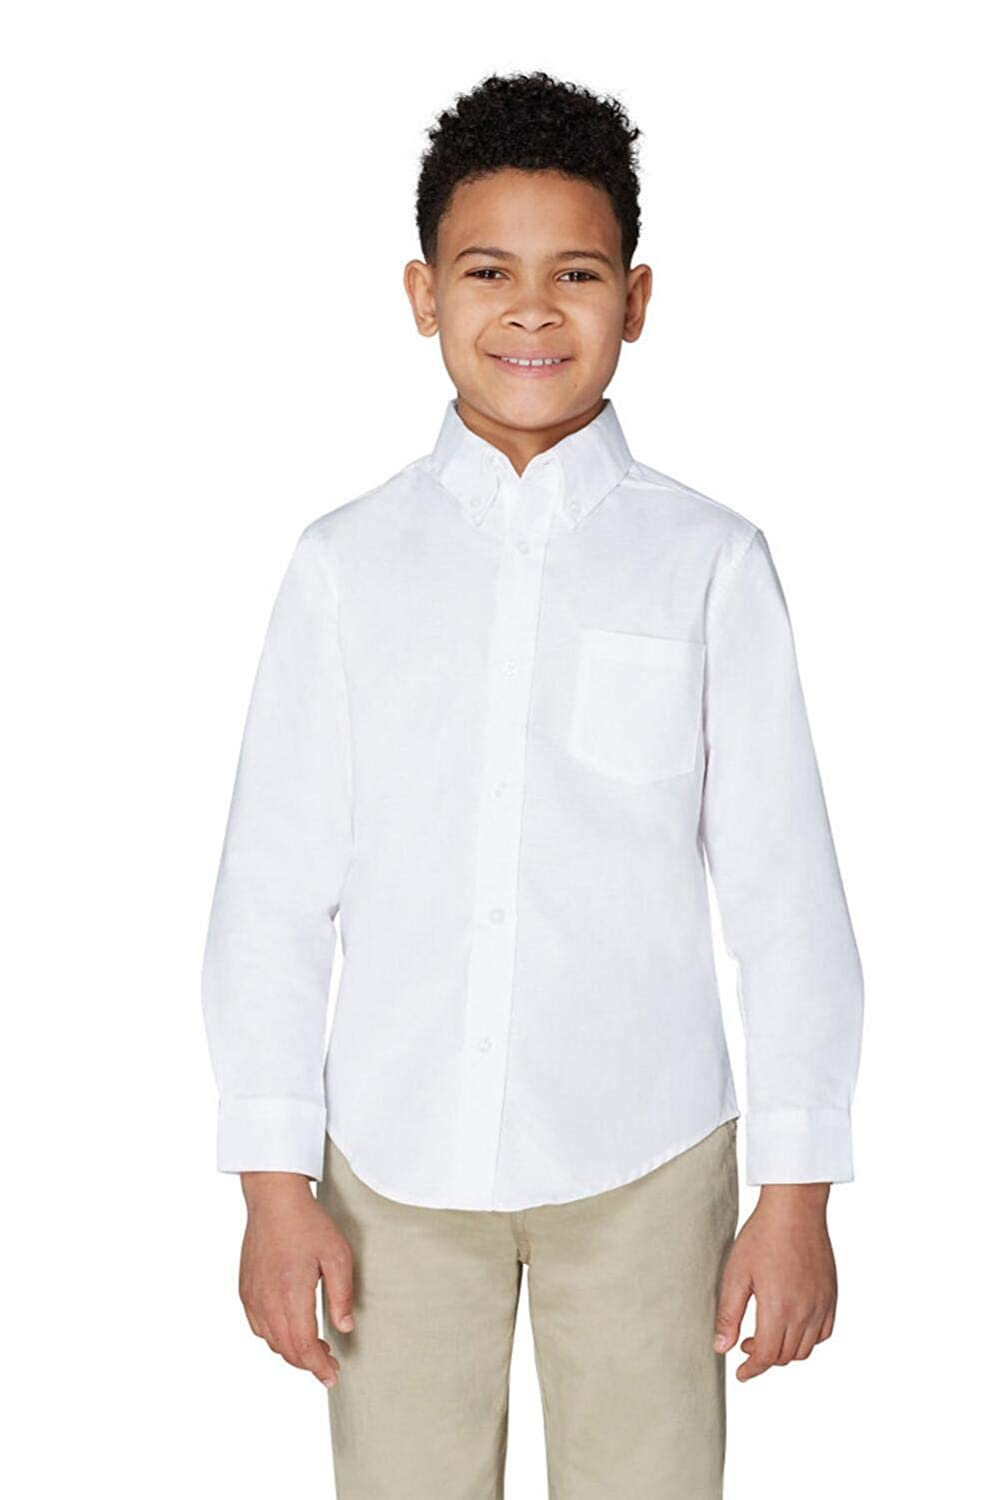 French Toast Long Sleeve Oxford Shirt White Large Husky French Toast School Uniforms 10179 WHIT LH